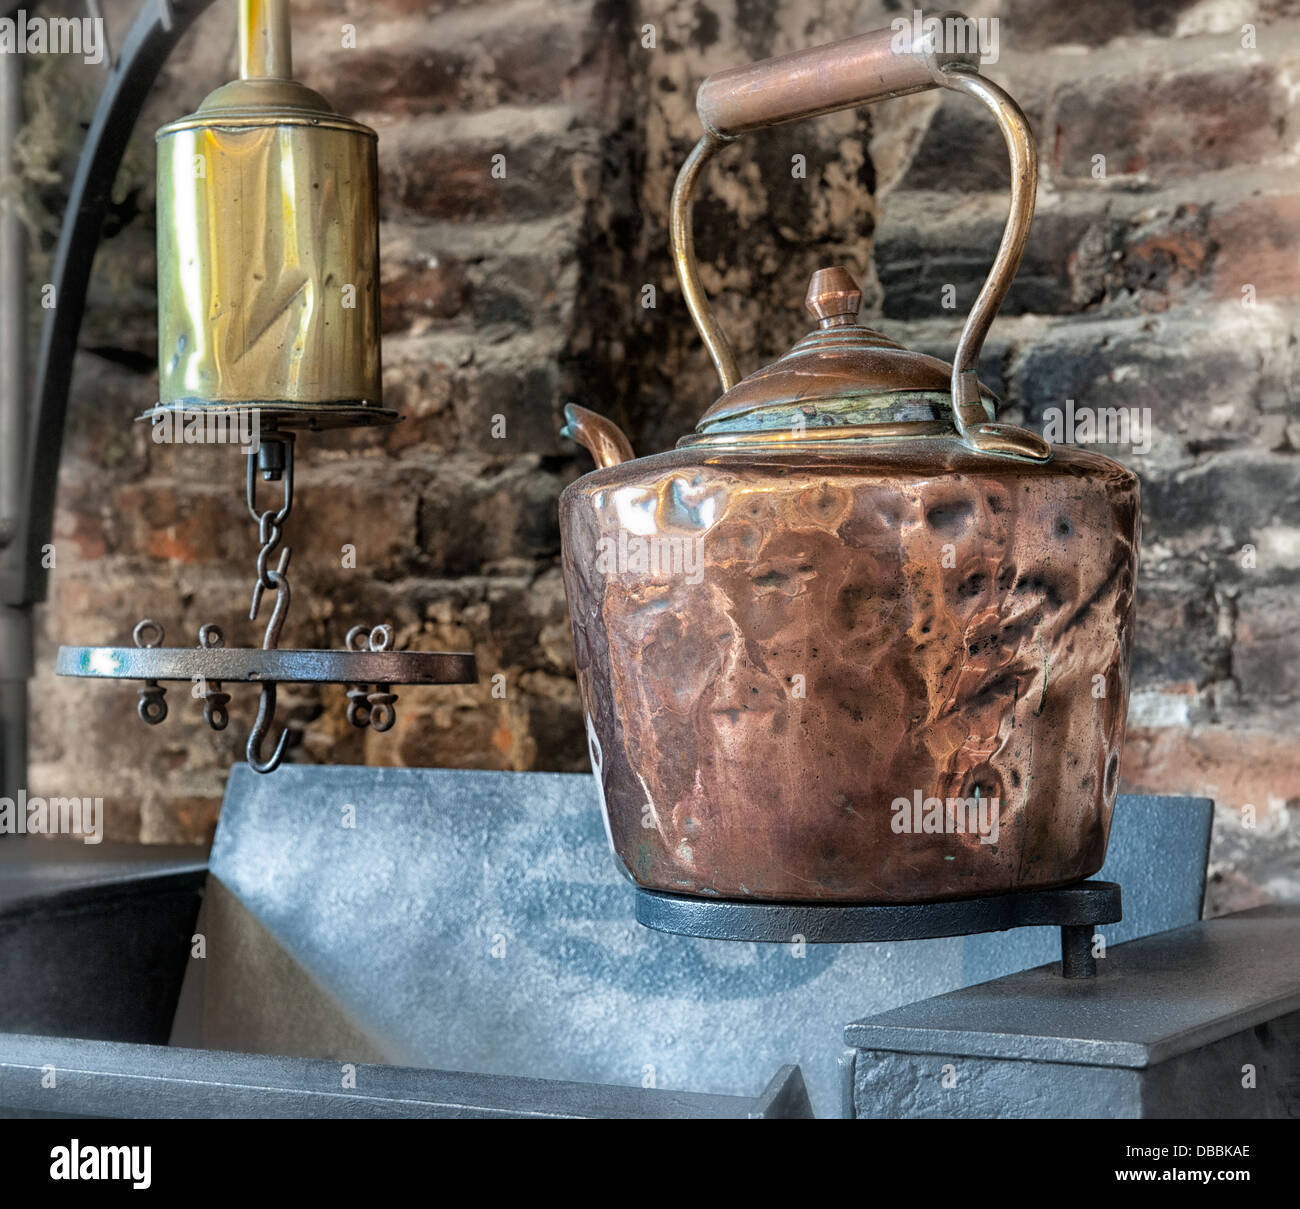 Copper kettle hanging above old stove. - Stock Image